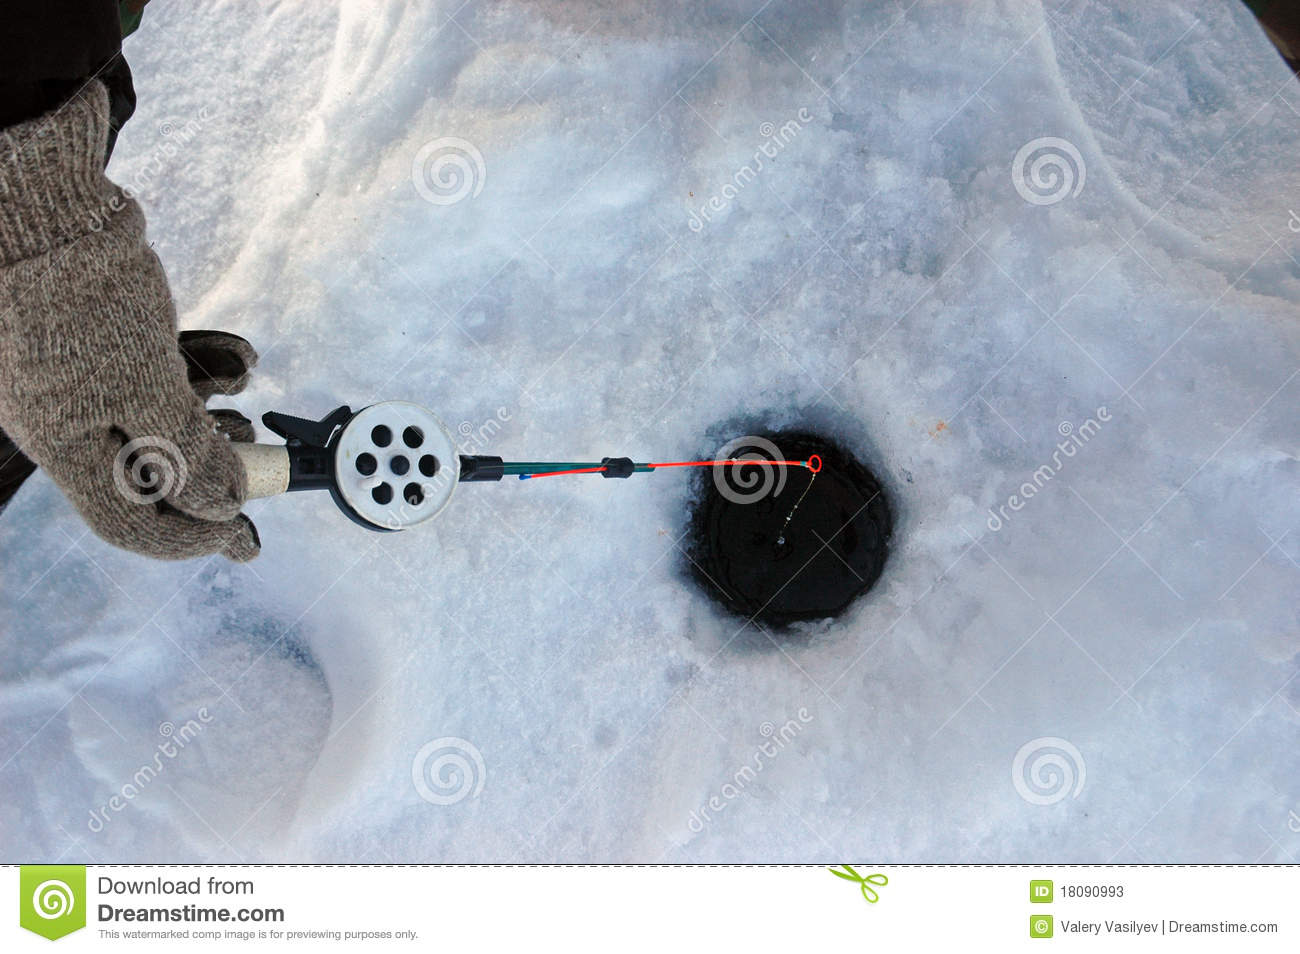 Winter fishing tackle stock photos image 18090993 for Winter fishing gear